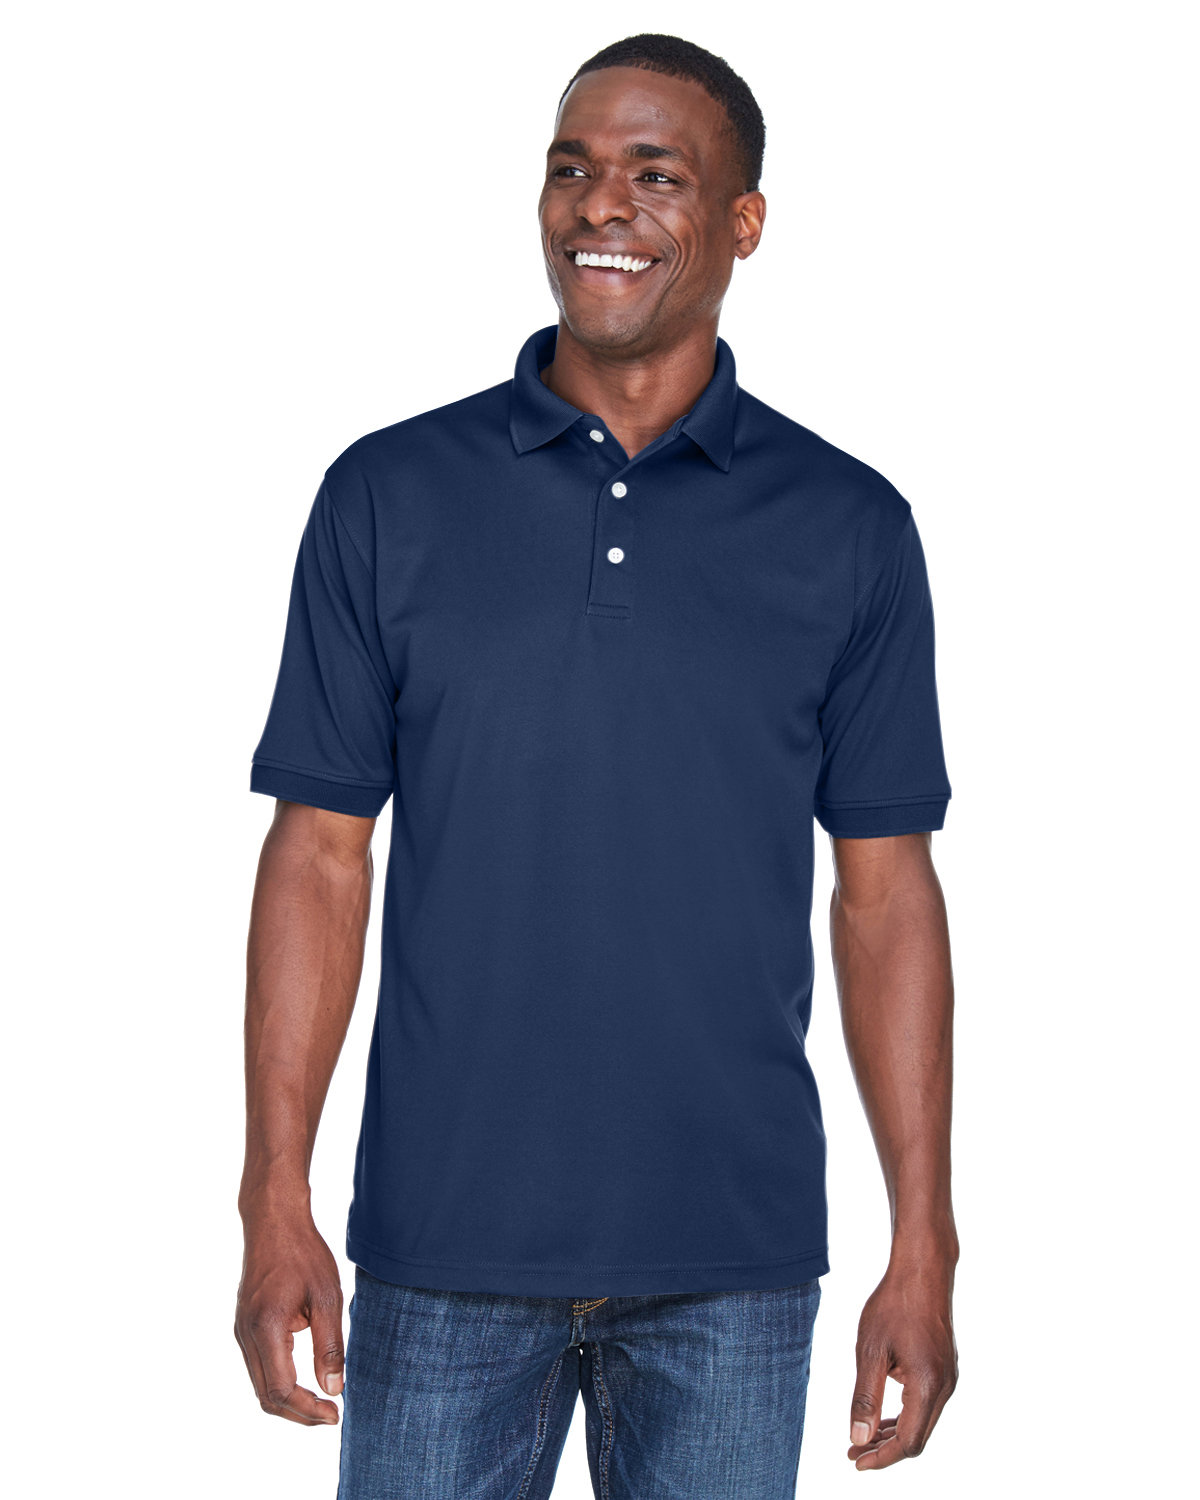 UltraClub Men's PlatinumPerformance Piqué Polo with TempControl Technology NAVY